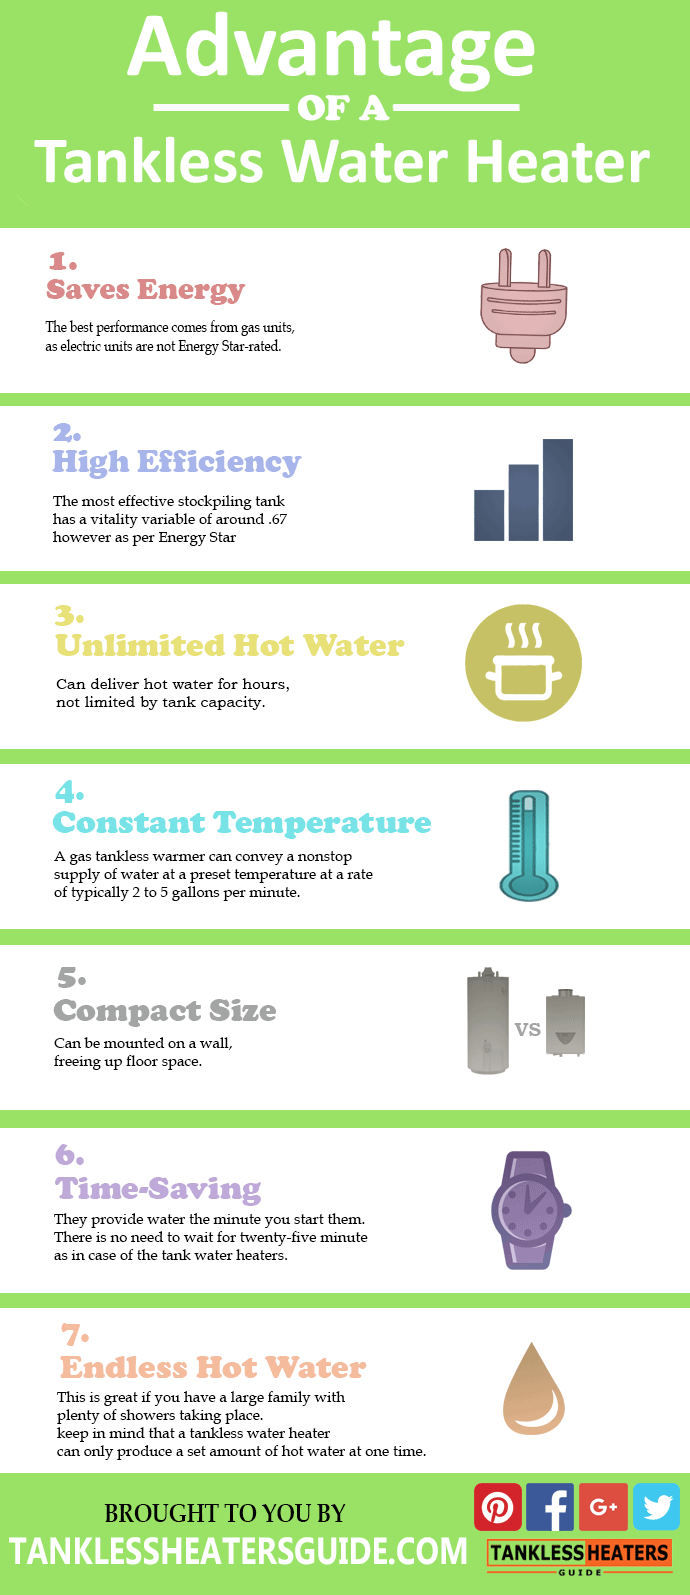 Advantage of a Tankless Water Heater Infographic